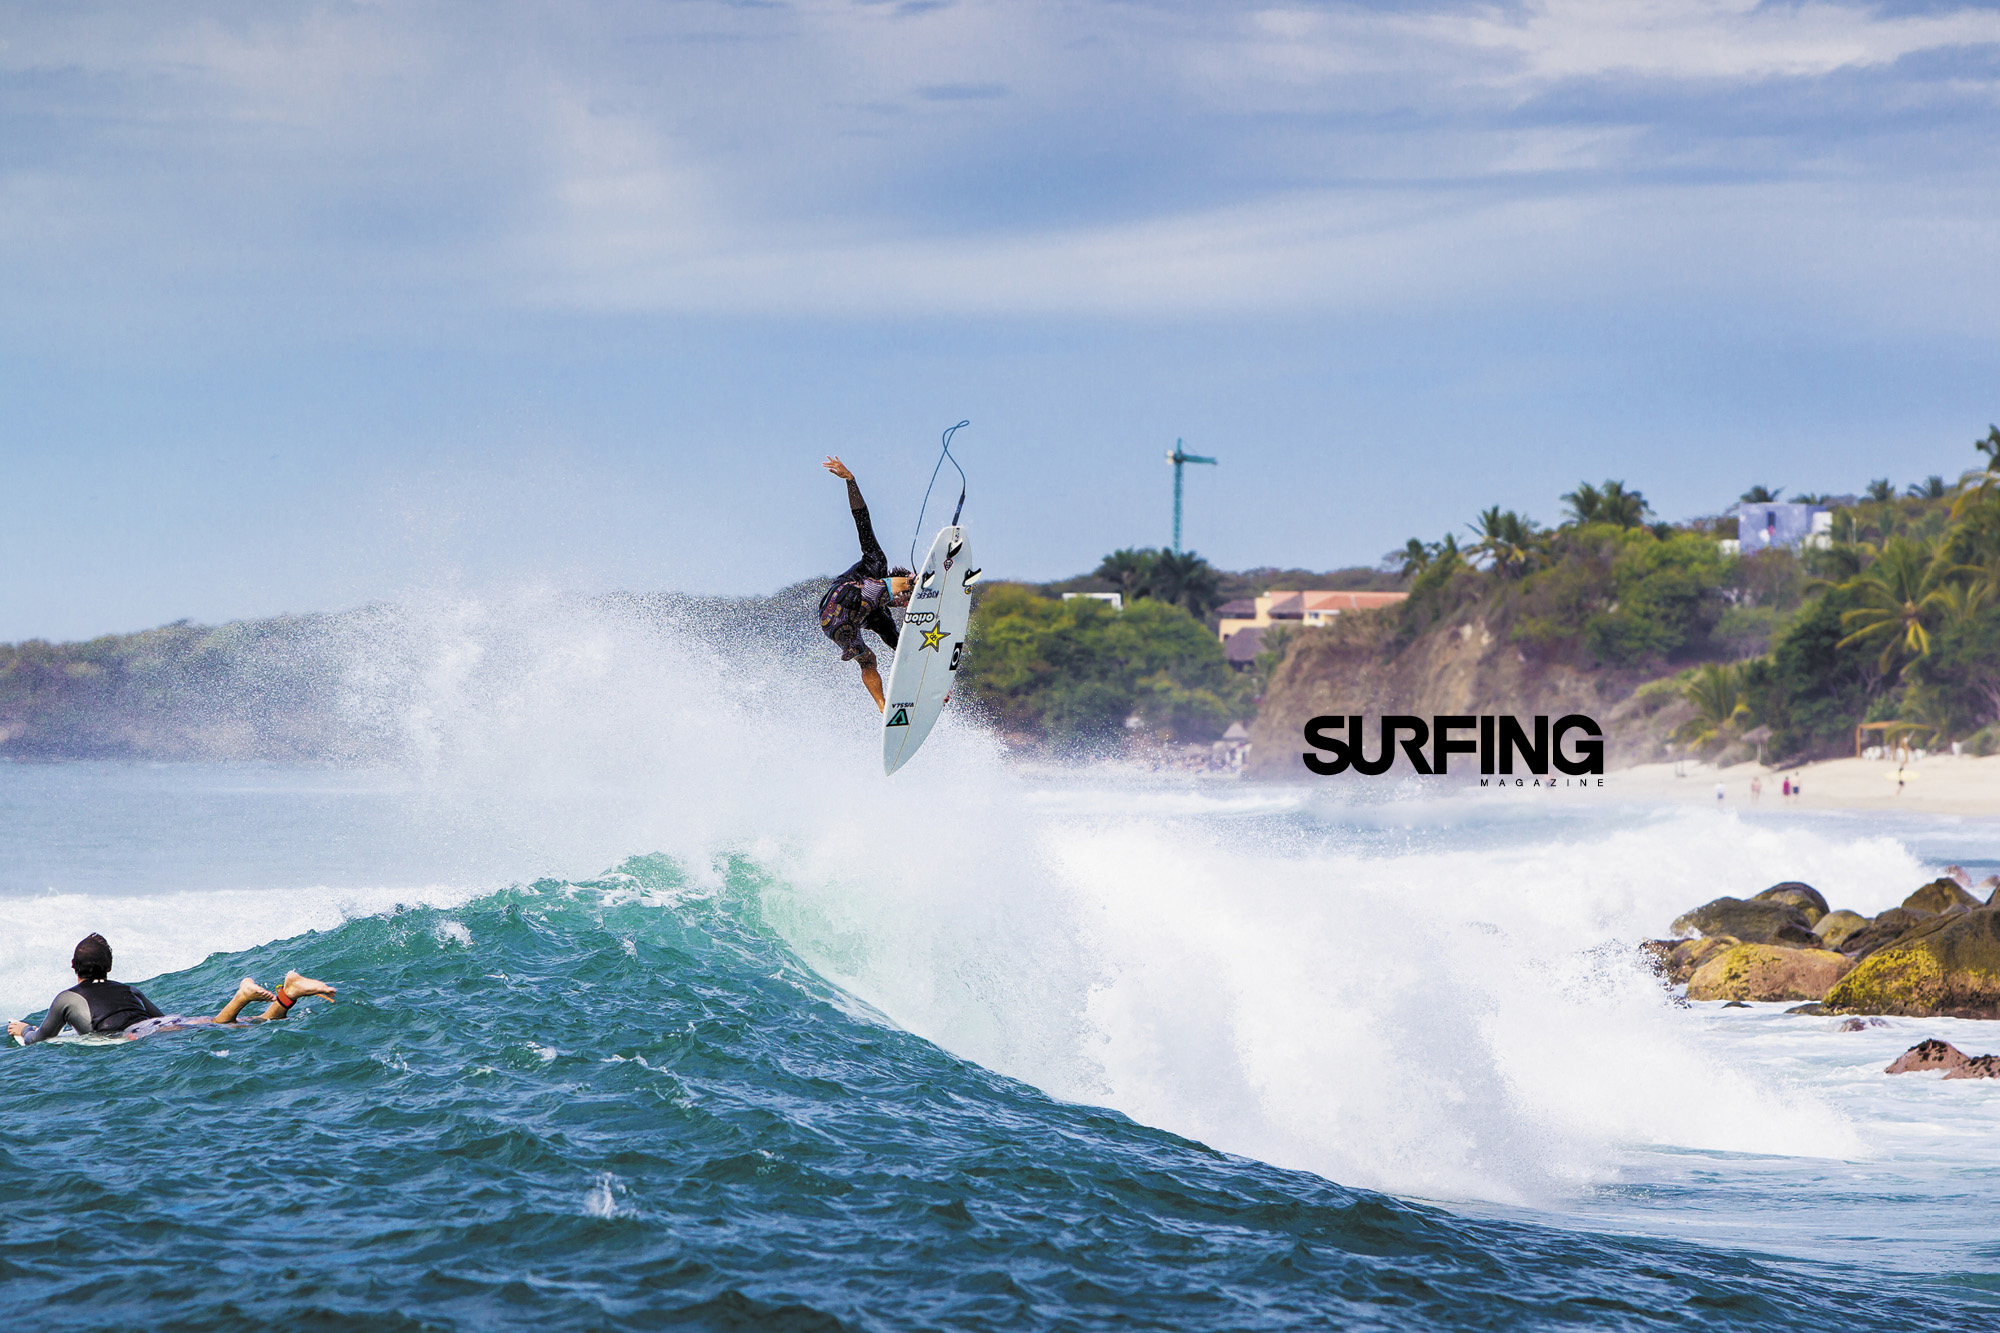 HD Surfing Backgrounds 2000x1333